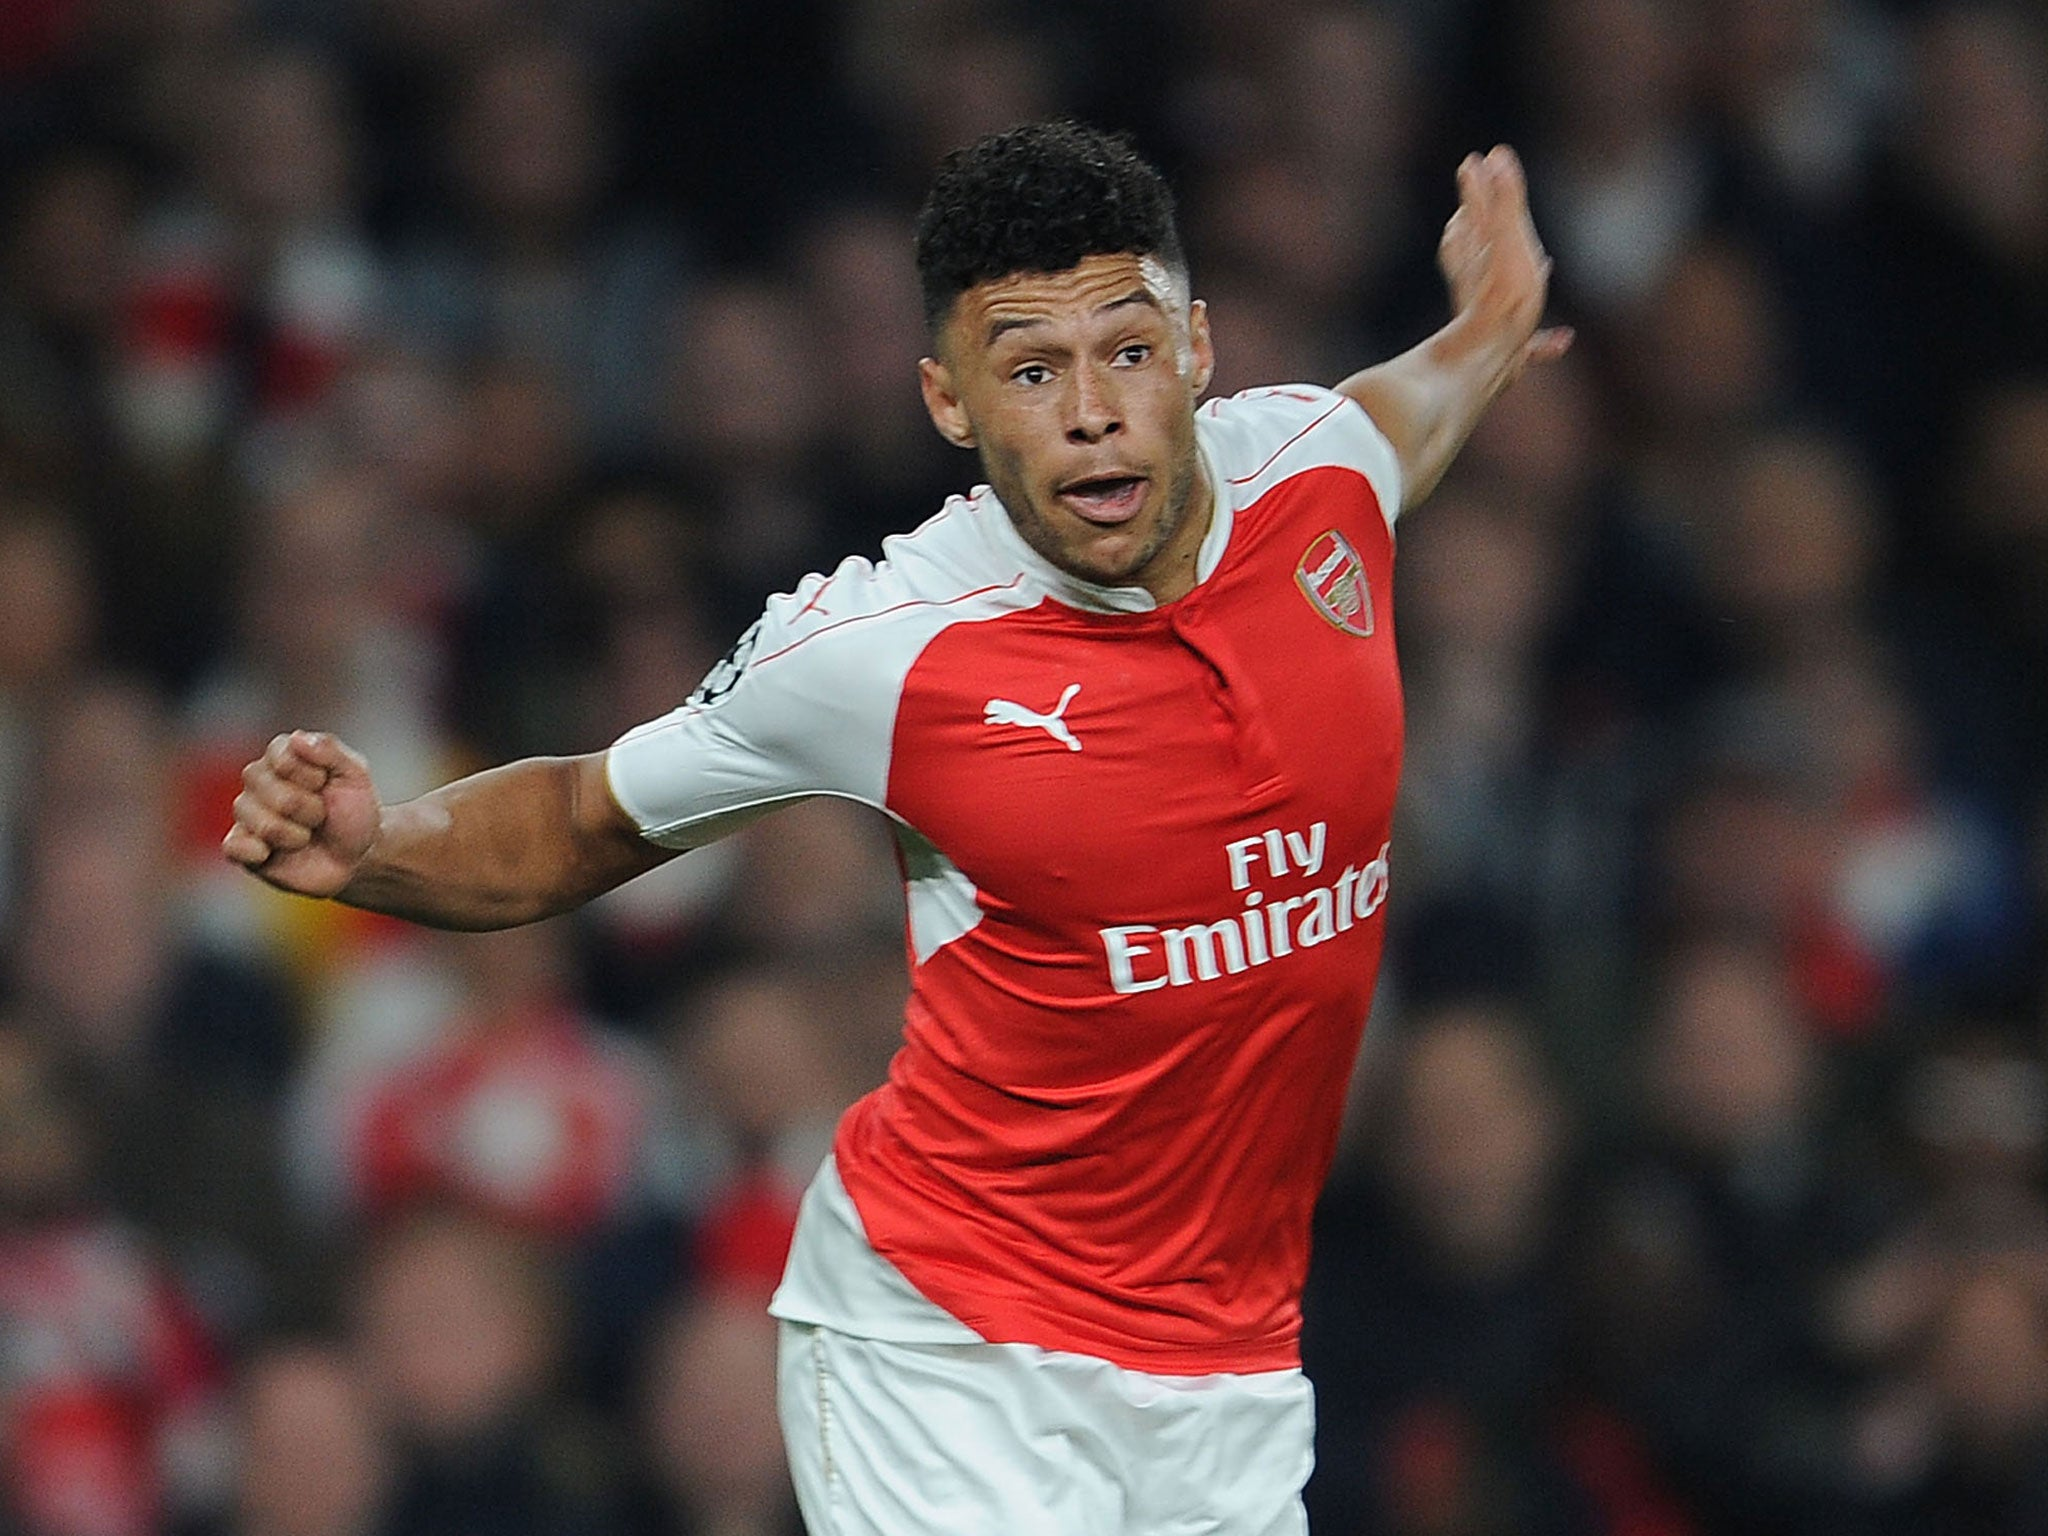 Arsenal name squad of 18 Alex Oxlade-Chamberlains despite England star being ruled out injured for Tottenham draw